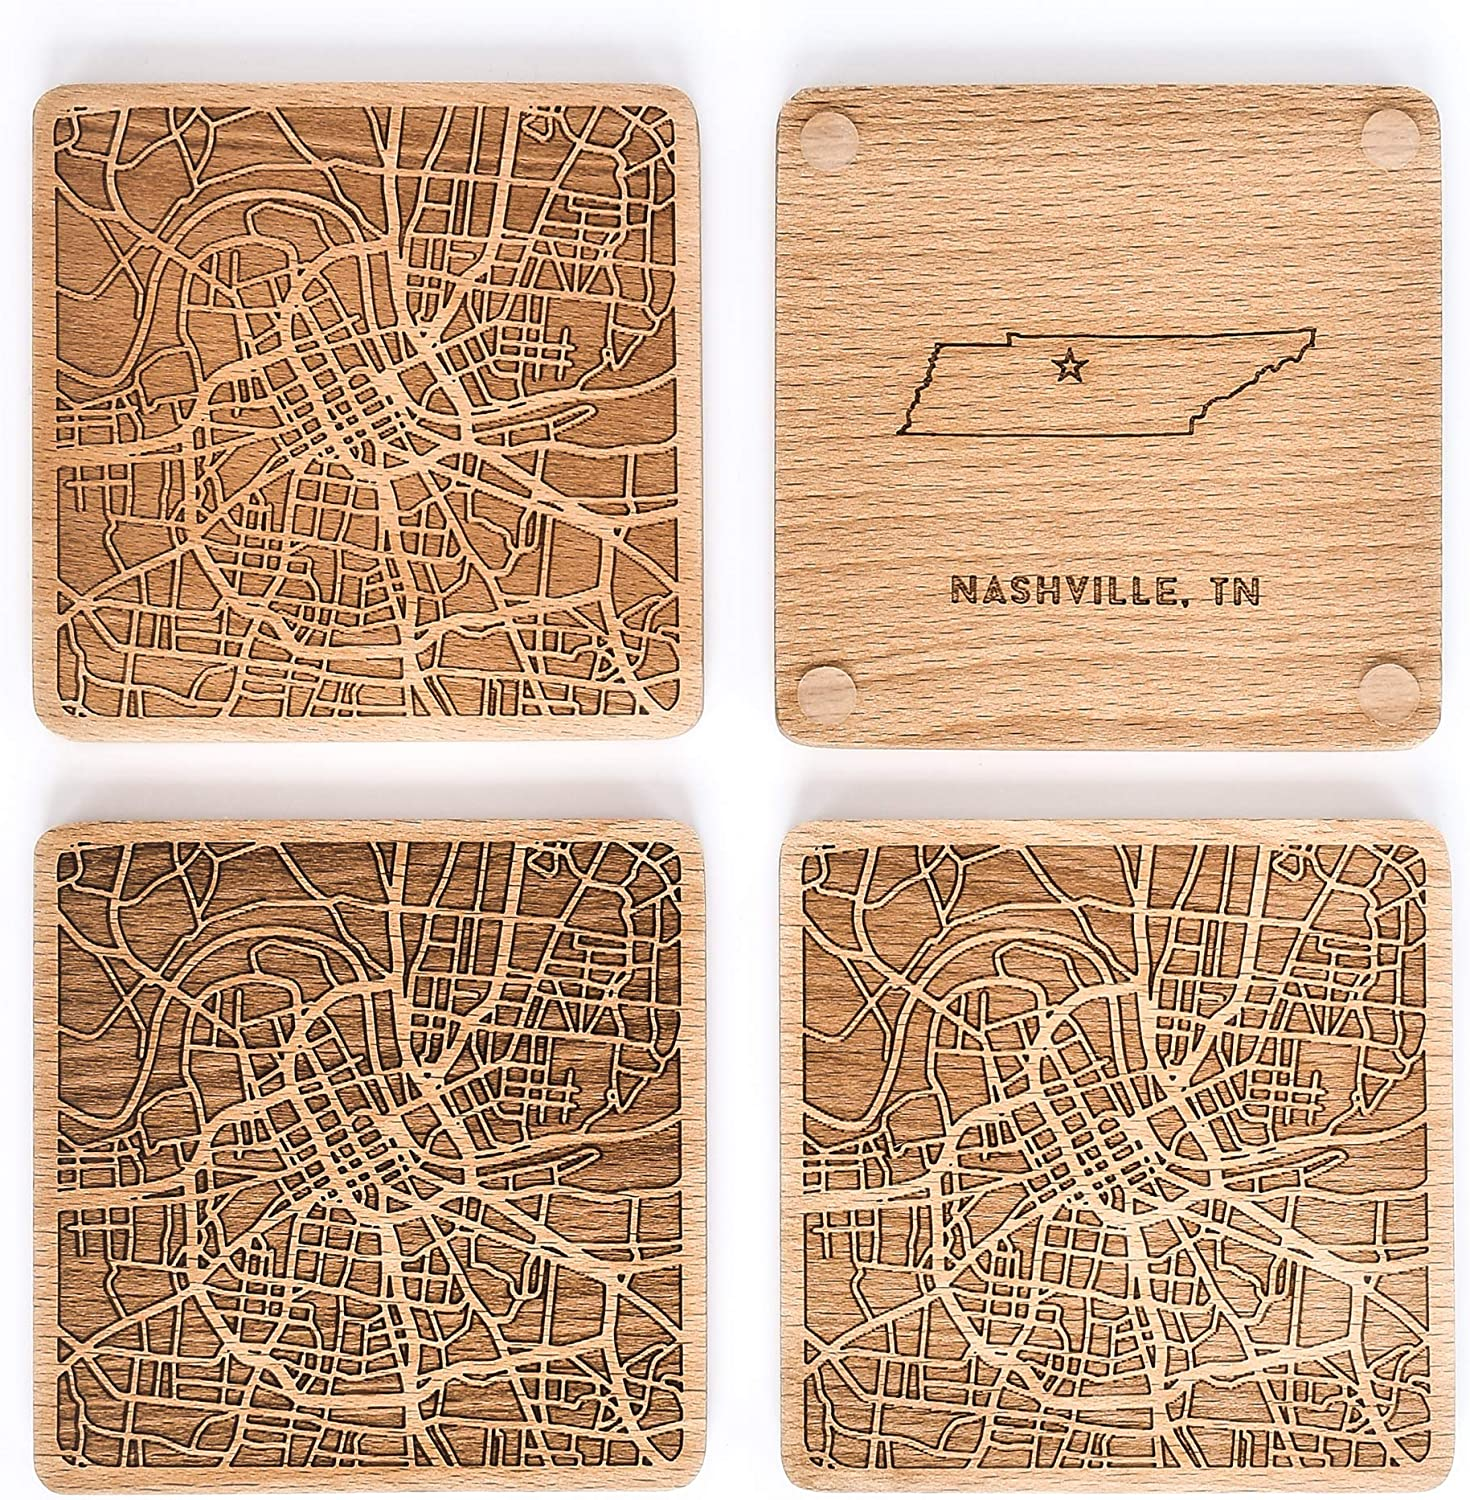 Greenline Goods Beech Wood Coasters Etched Wooden Coaster Set for Nashville Lovers | Set of 4 | Etched with Nashville Map and State of Tennessee | 2 Sided |